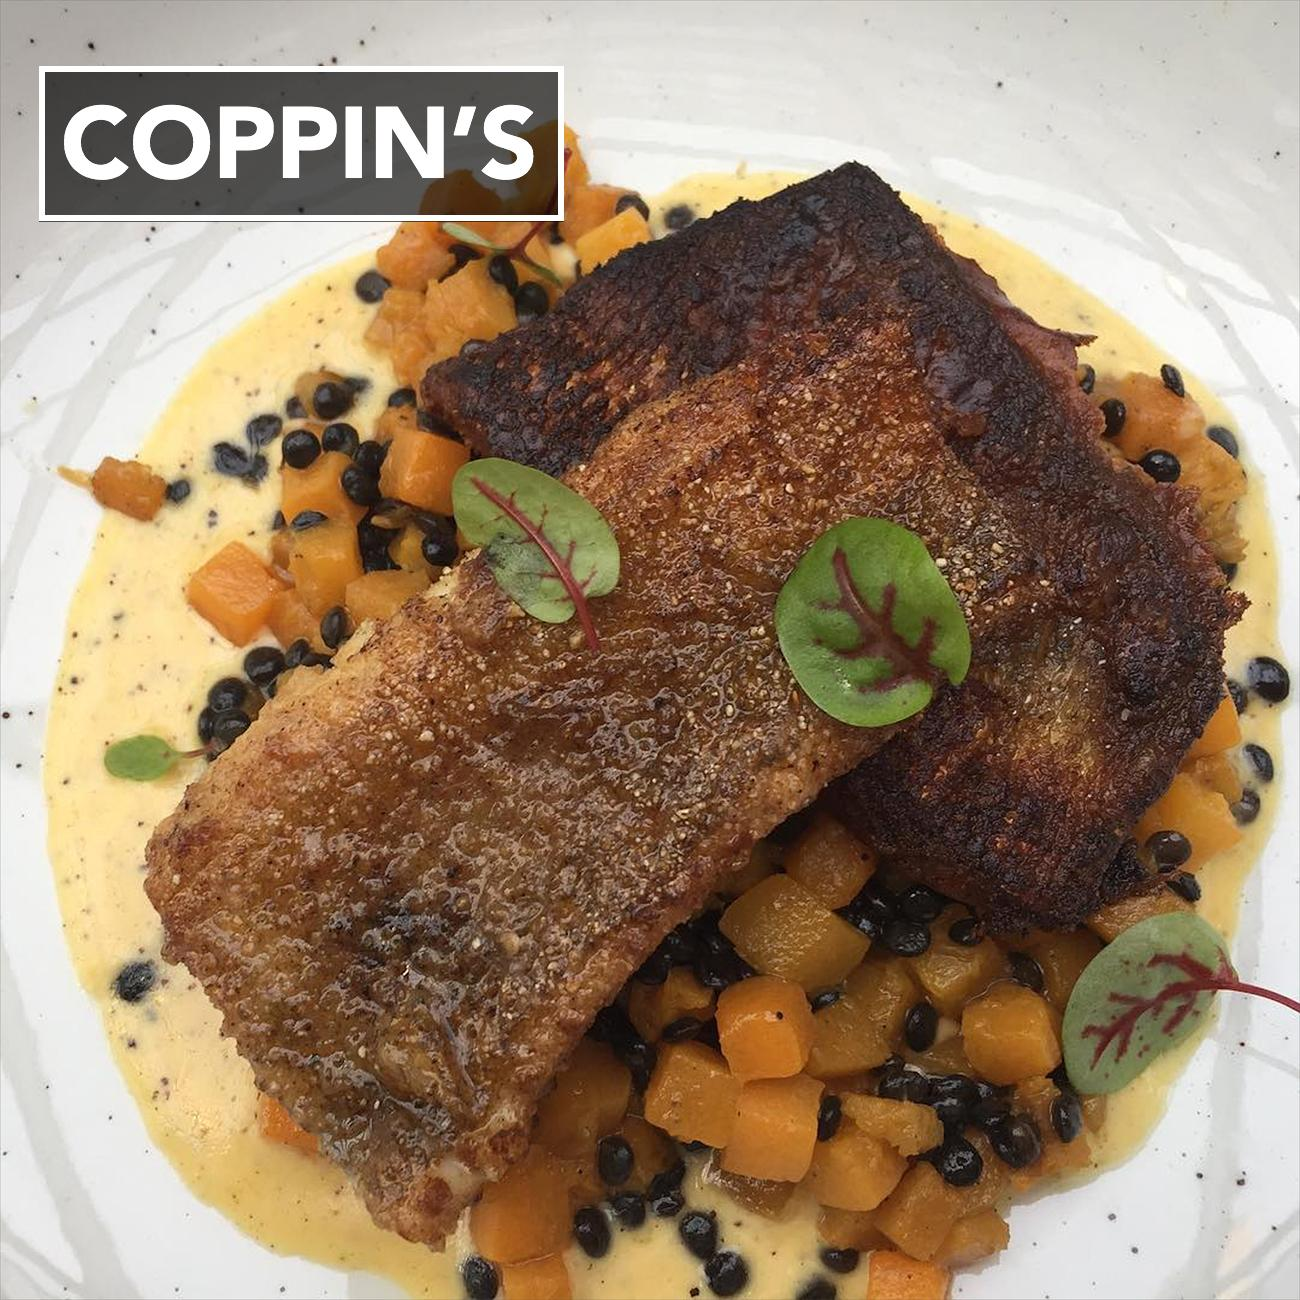 Coppin's is located at 683 Madison Ave., Covington, KY 41011 / Image: IG user @kathydahl0307 // Published: 1.29.17